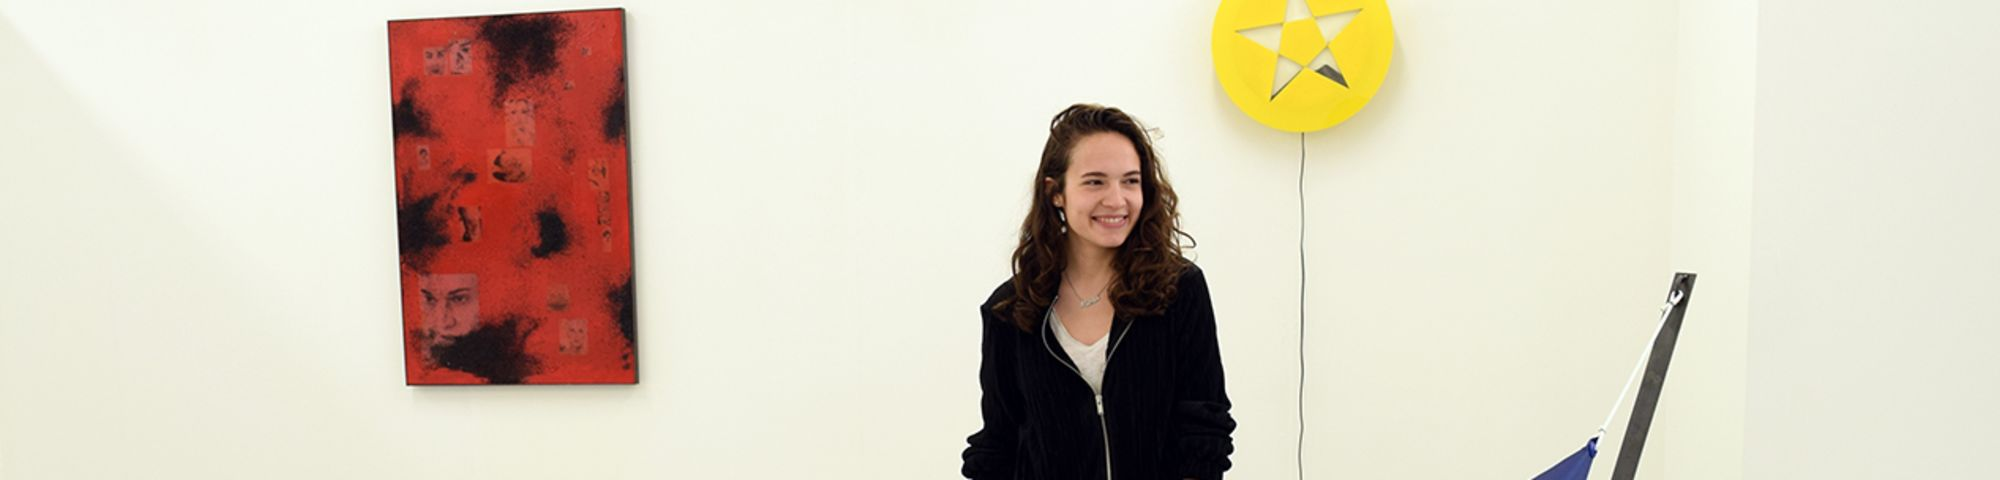 Marta Barina next to her degree work